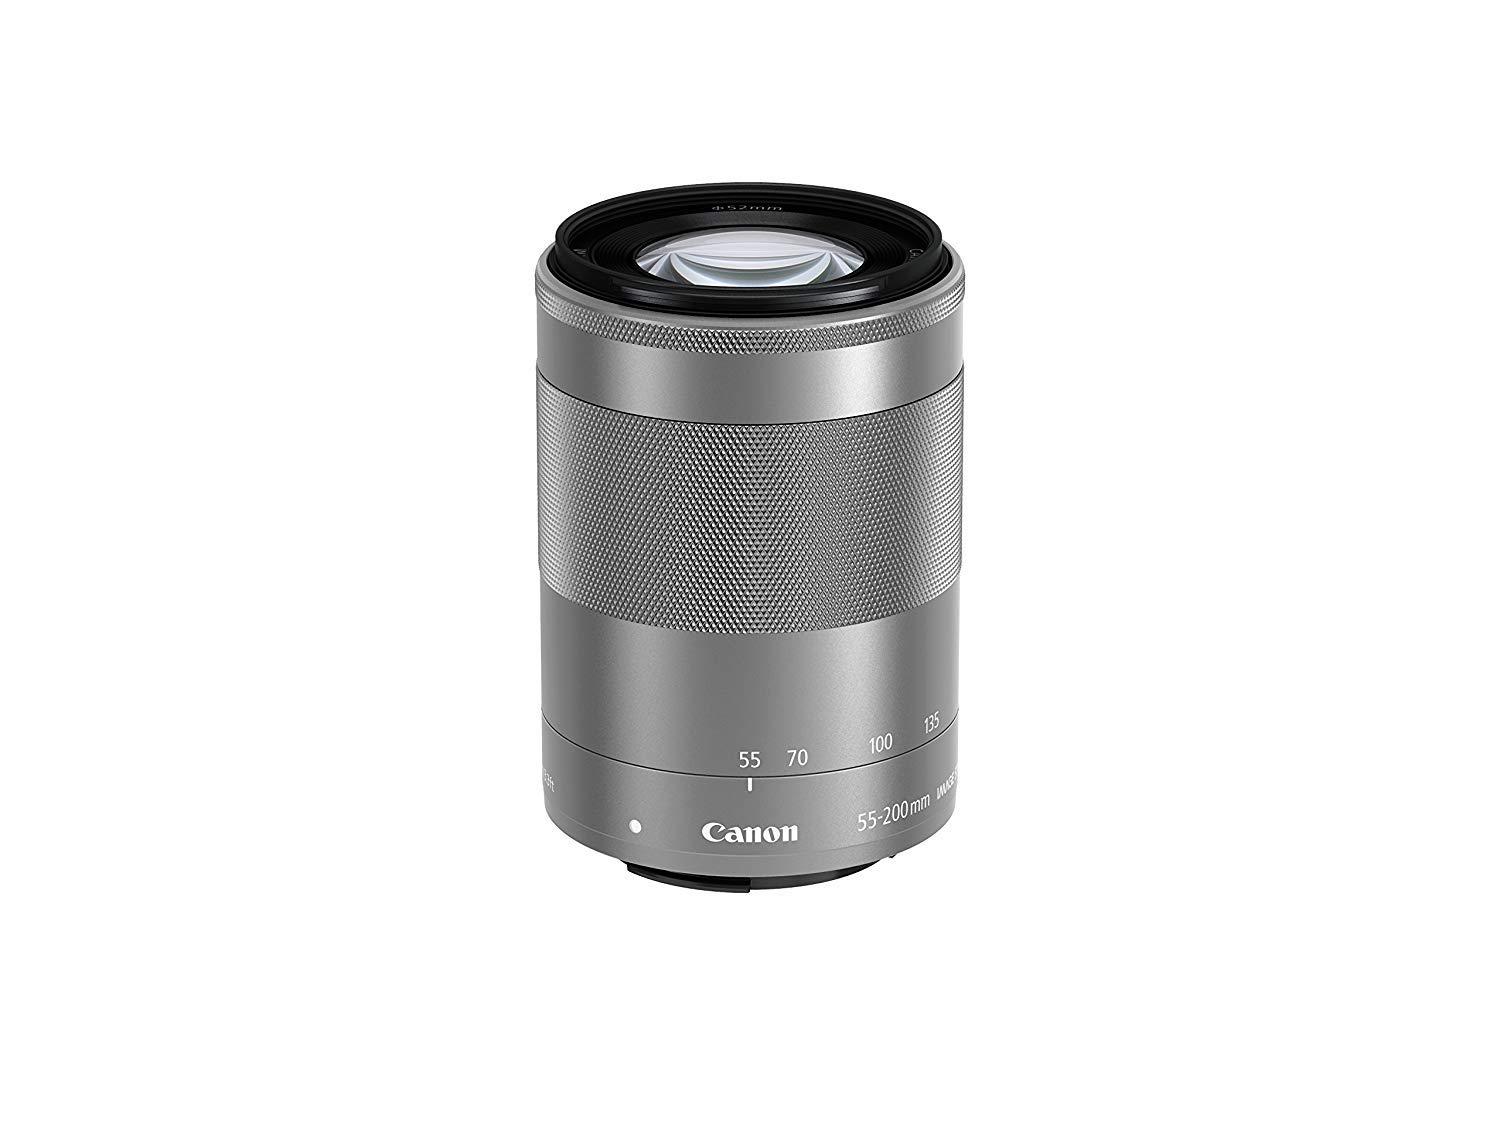 Canon EF-M 55-200mm f/4.5-6.3 Image Stabilization STM Zoom Lens (Silver) (Renewed) by Canon